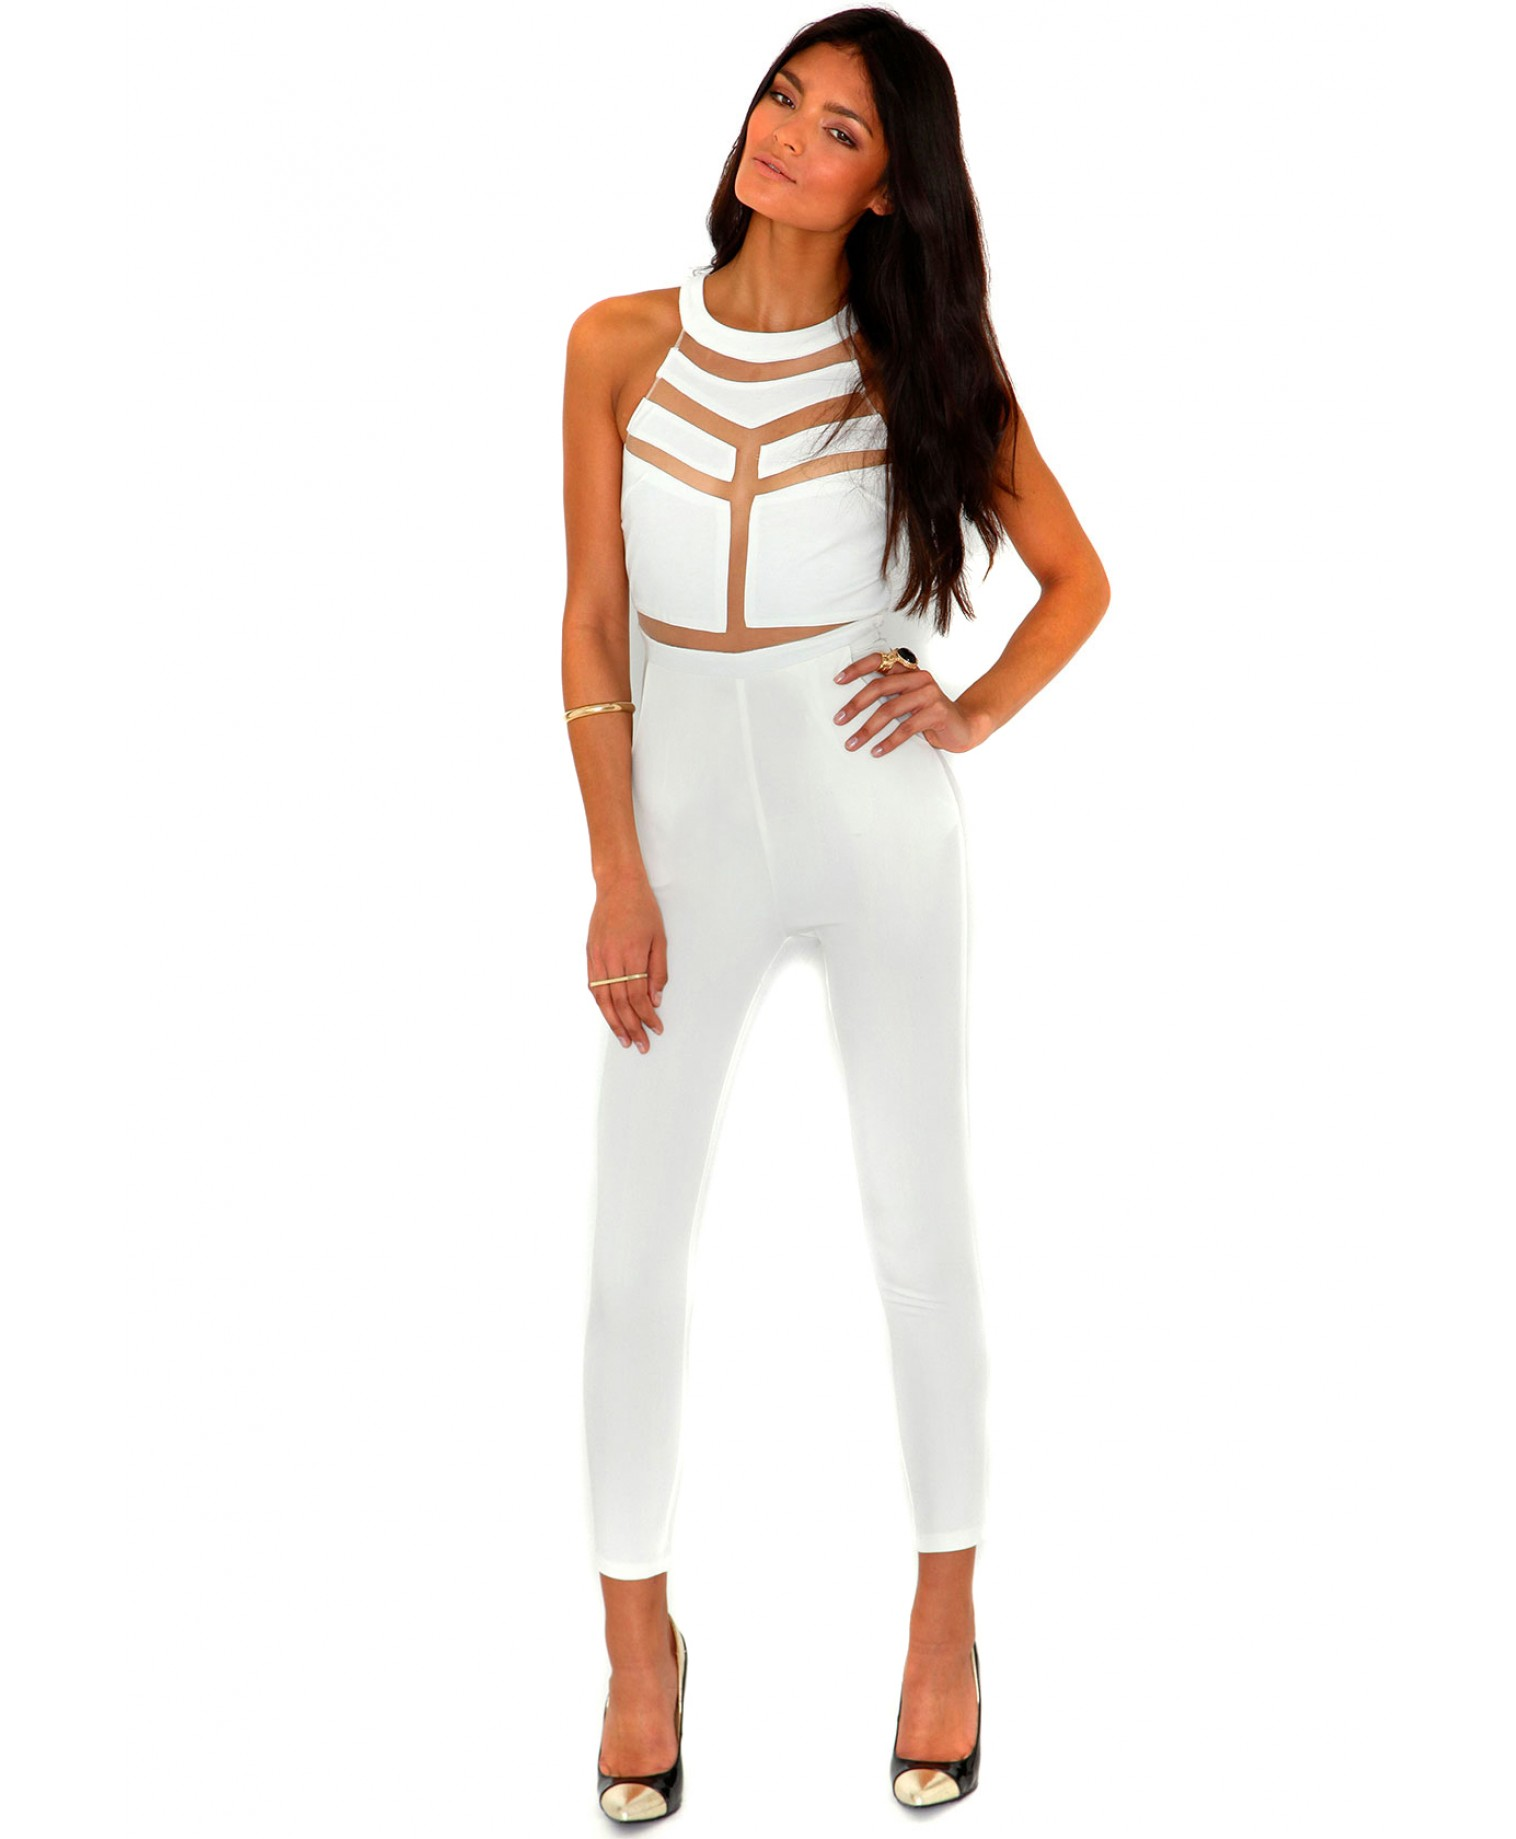 Missguided - Milenka Mesh Panel Jumpsuit In Cream